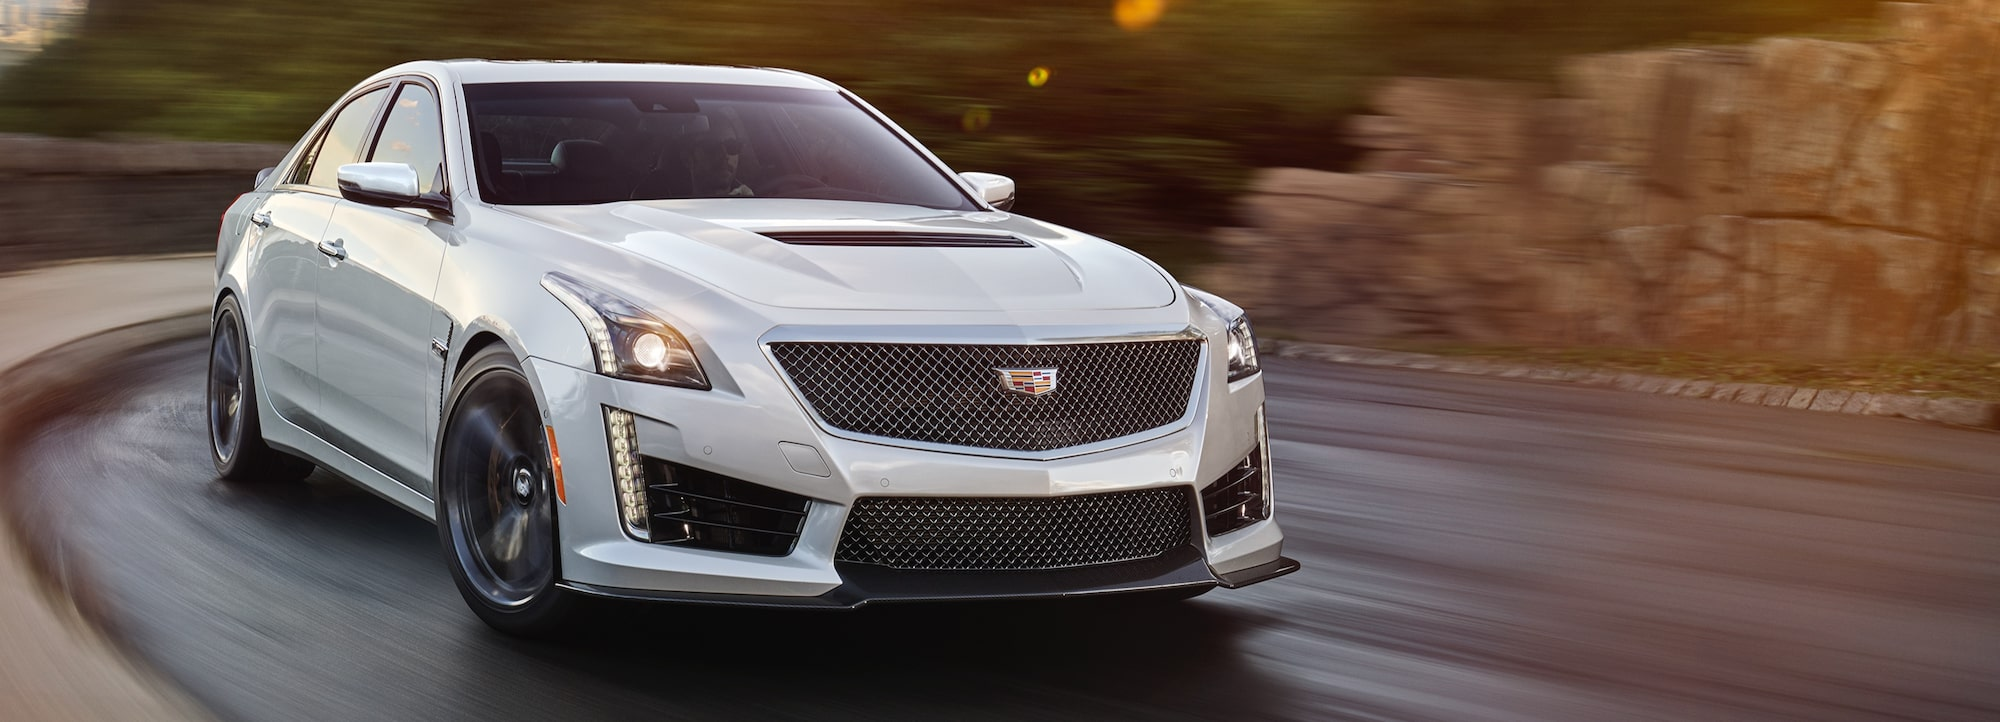 small resolution of cts v driving on the road